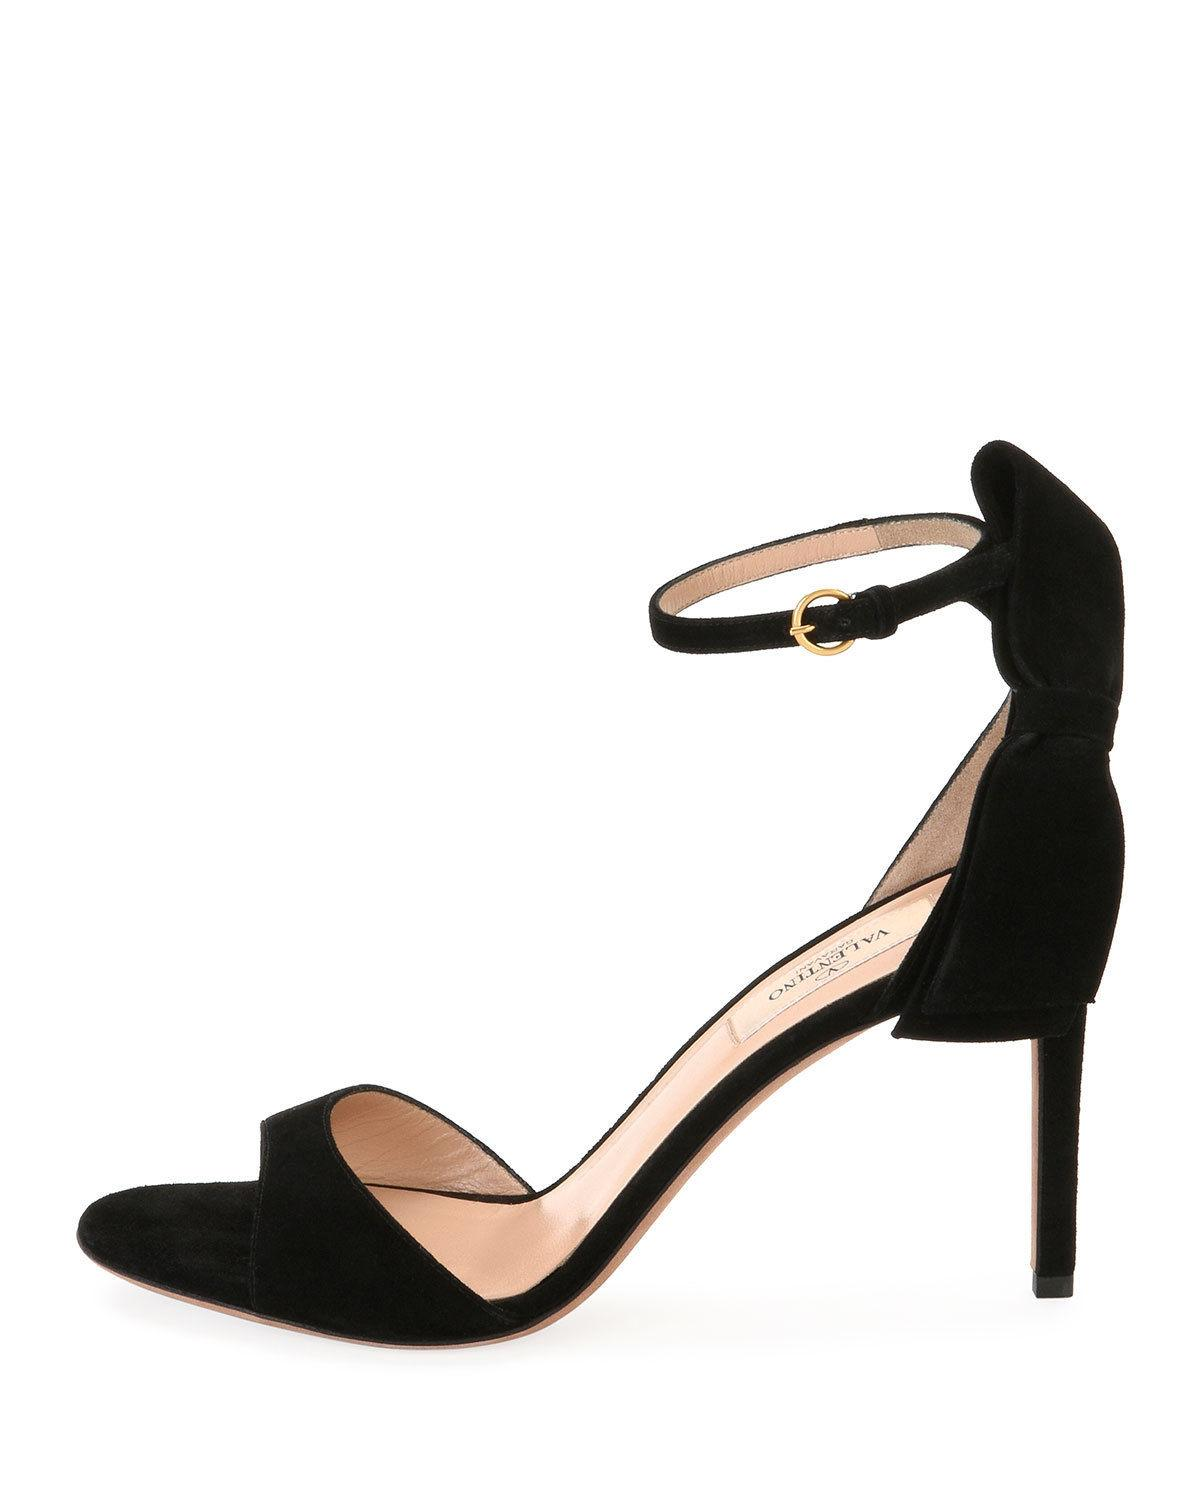 Valentino Garavani Black Suede Back Bow Ankle Strap Pumps Sandals Shoes 39